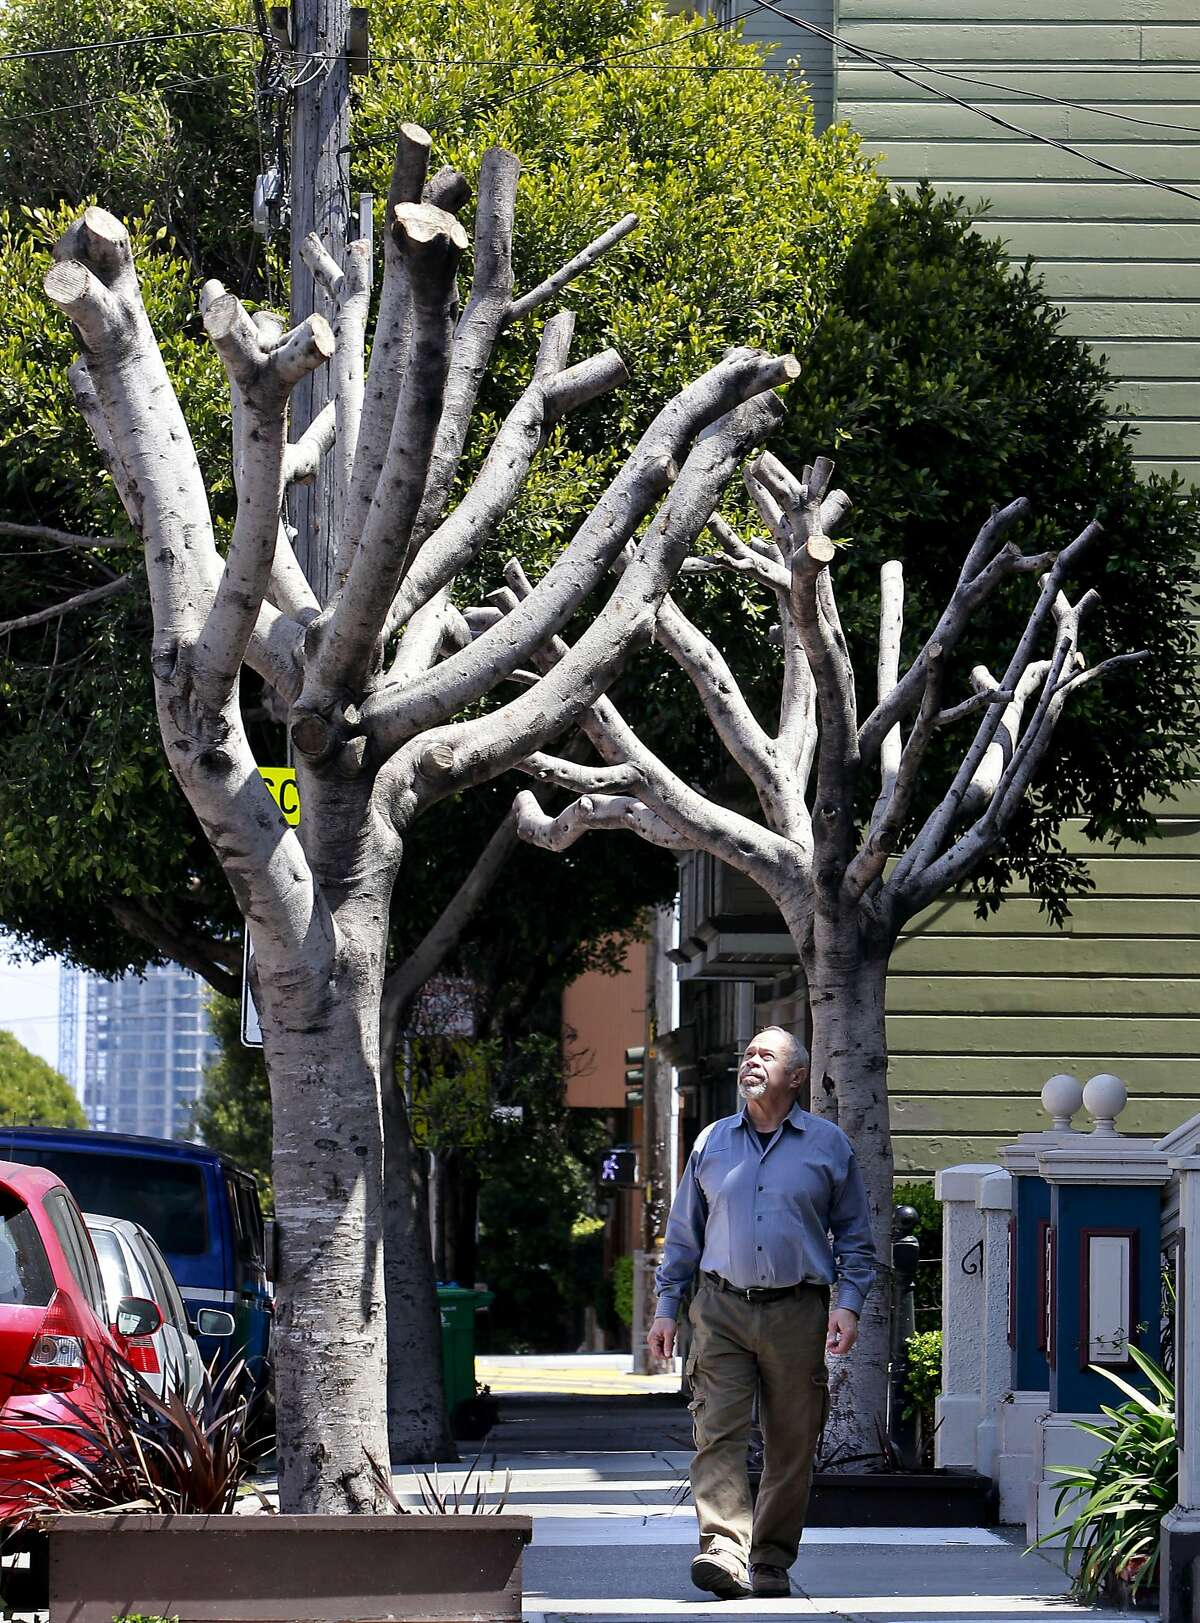 Homeowner Bernard Schweigert, in front of his home along Oak Street with the two Ficus Microcarpa Nitalda trees on his front sidewalk, in San Francisco, Calif., on Friday April 26, 2013. Informed by the City of San Francisco that he is responsible for the maintenance of the trees in front of his home, Schweigert had the trees